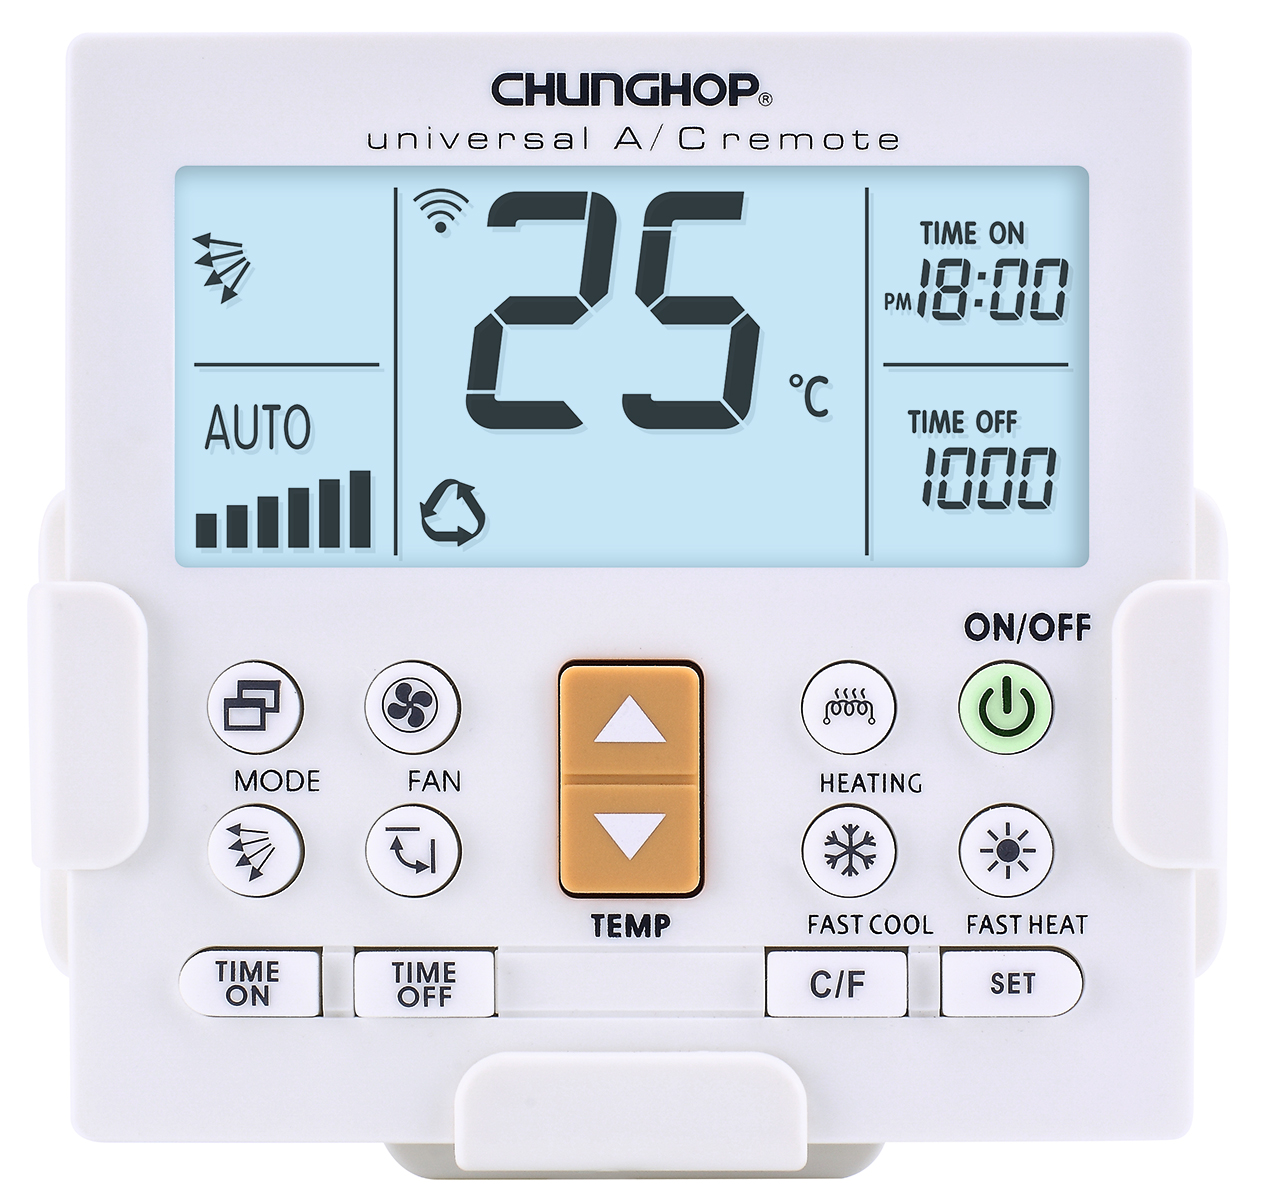 CHUNGHOP K-650E LCD Universal Air Conditioner Remote Control LED Backlit Wall Mounted AC Control